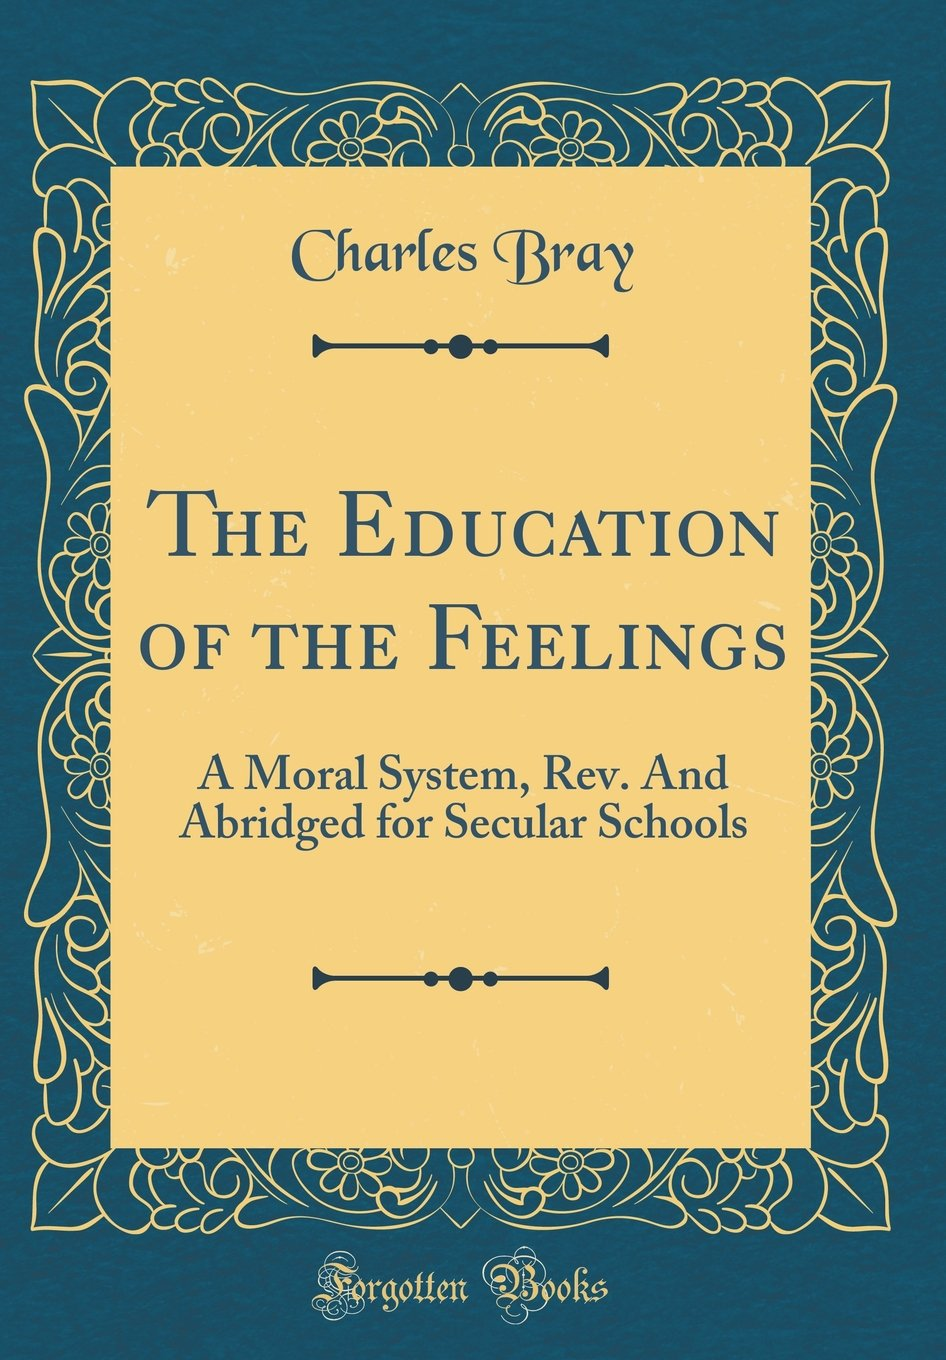 Download The Education of the Feelings: A Moral System, Rev. And Abridged for Secular Schools (Classic Reprint) ebook